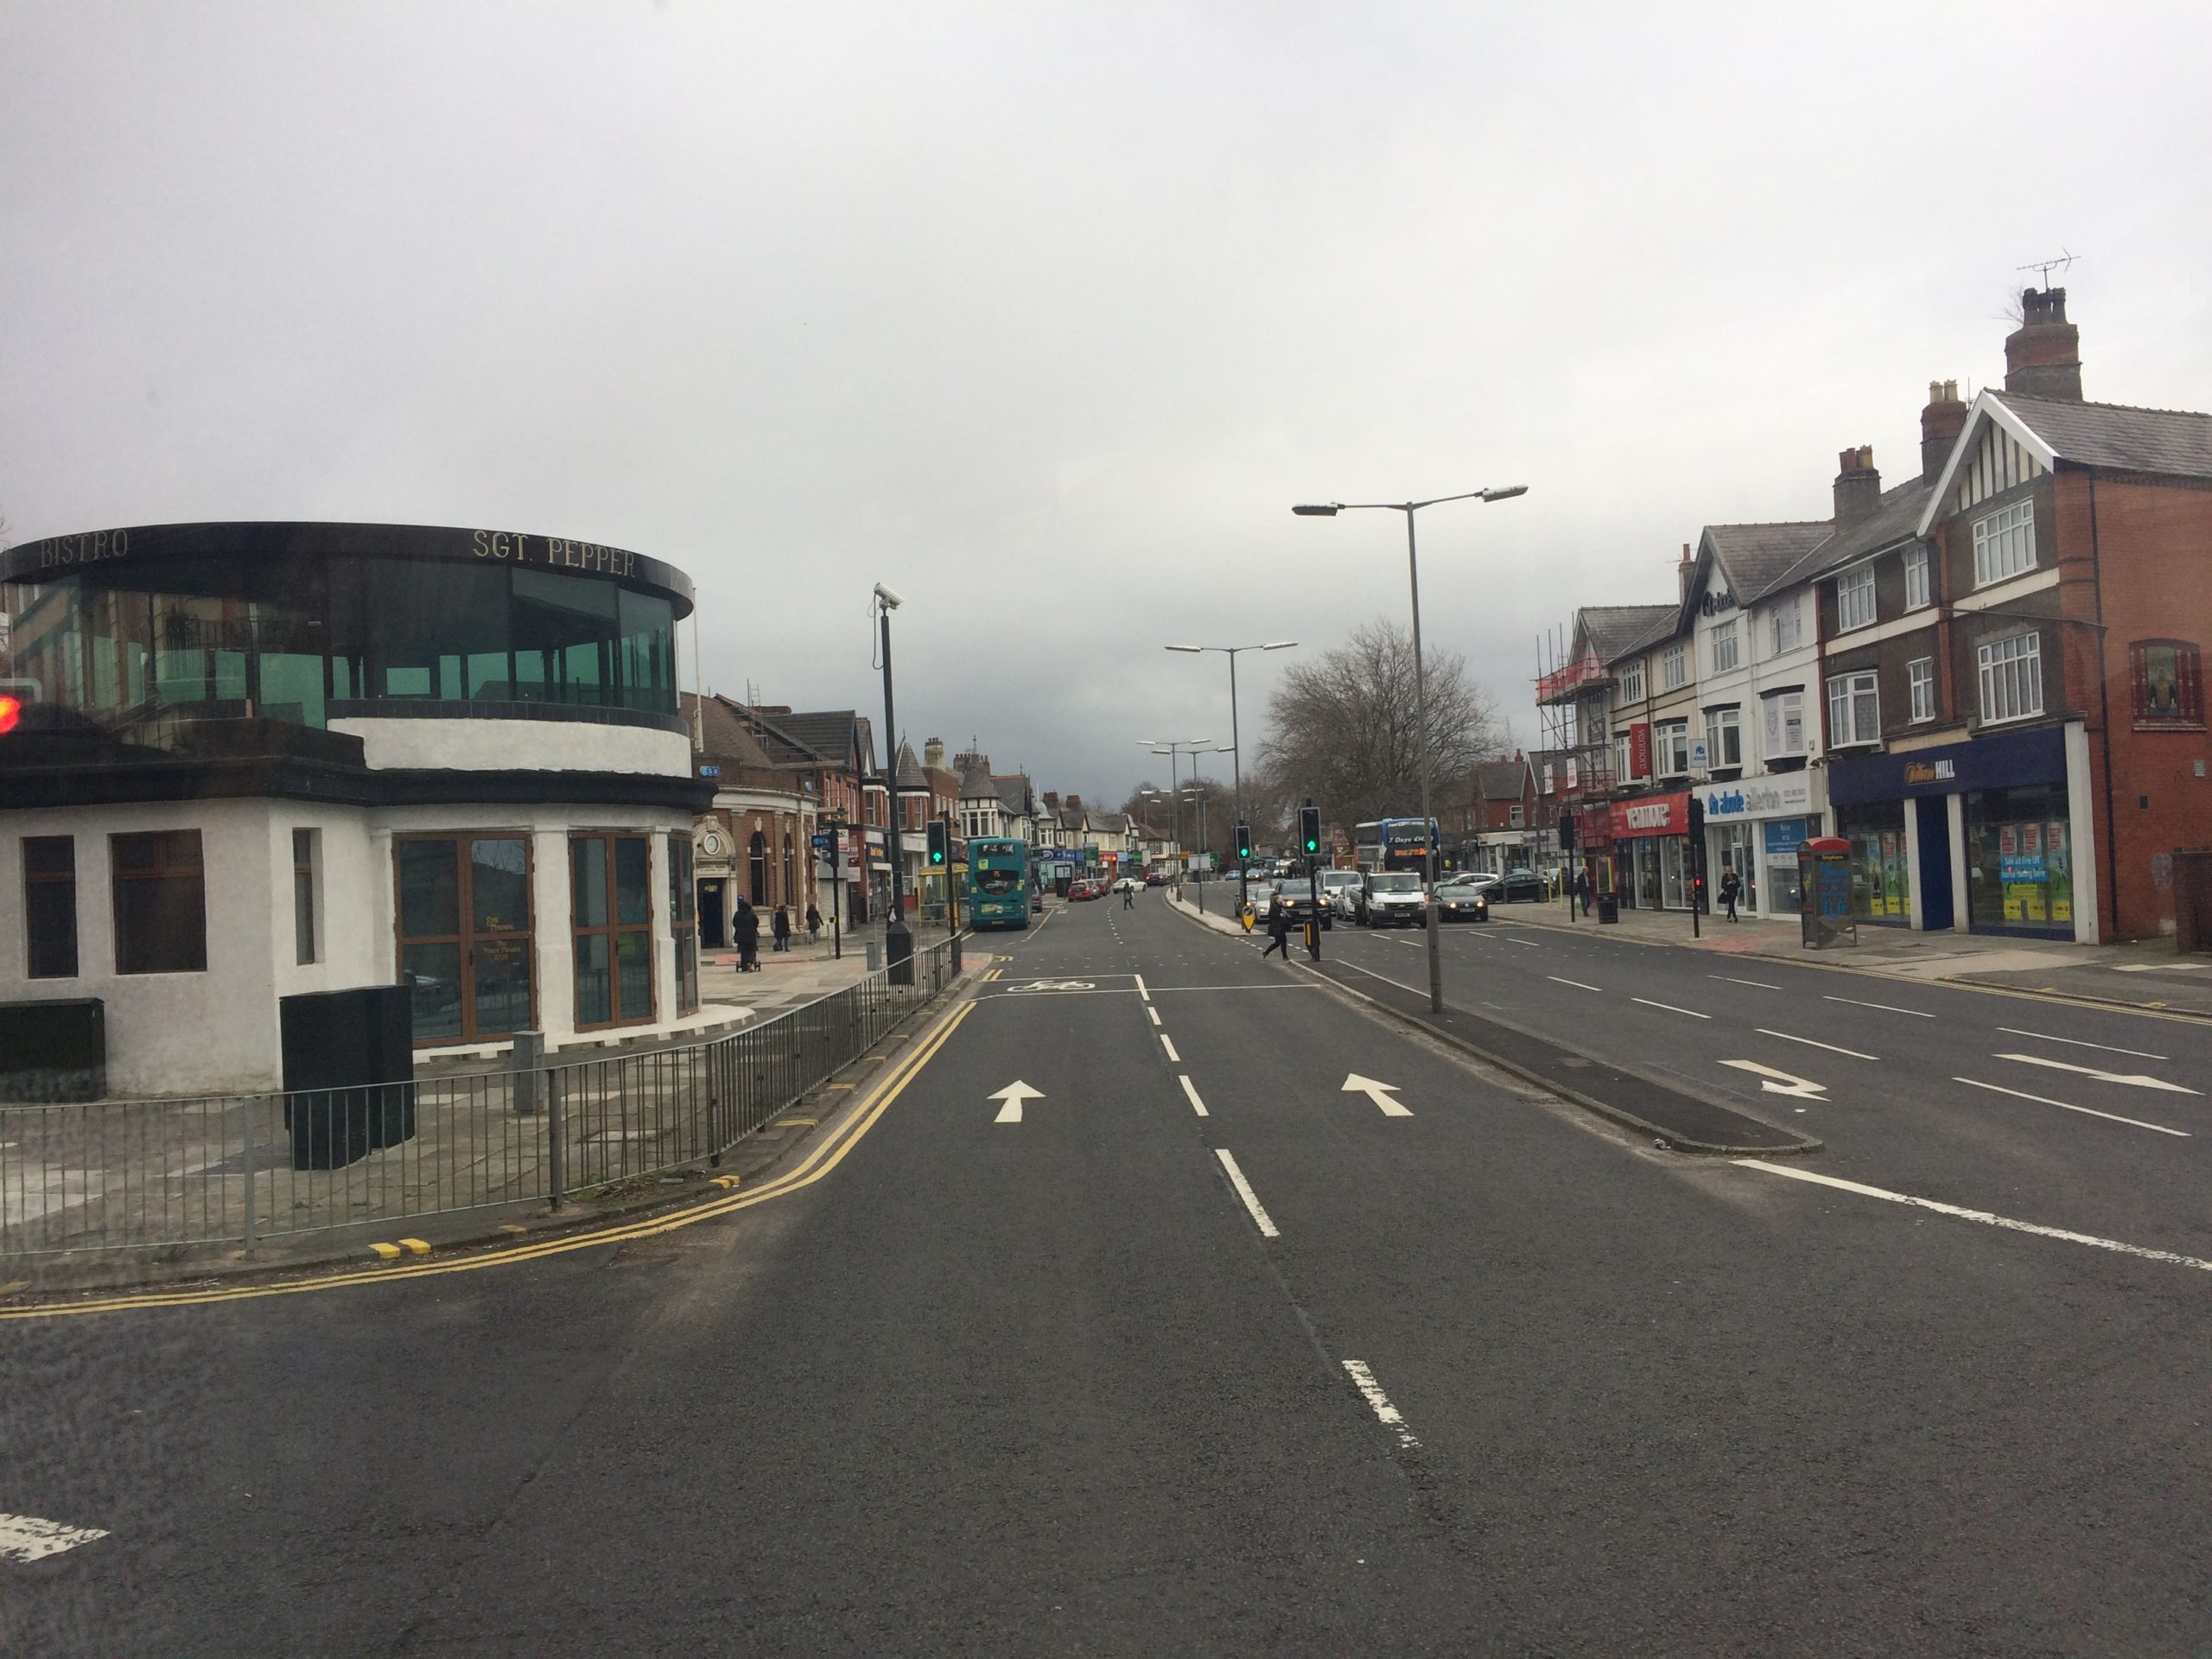 a photo of Penny Lane with the shelter in the roundabout visible to the left